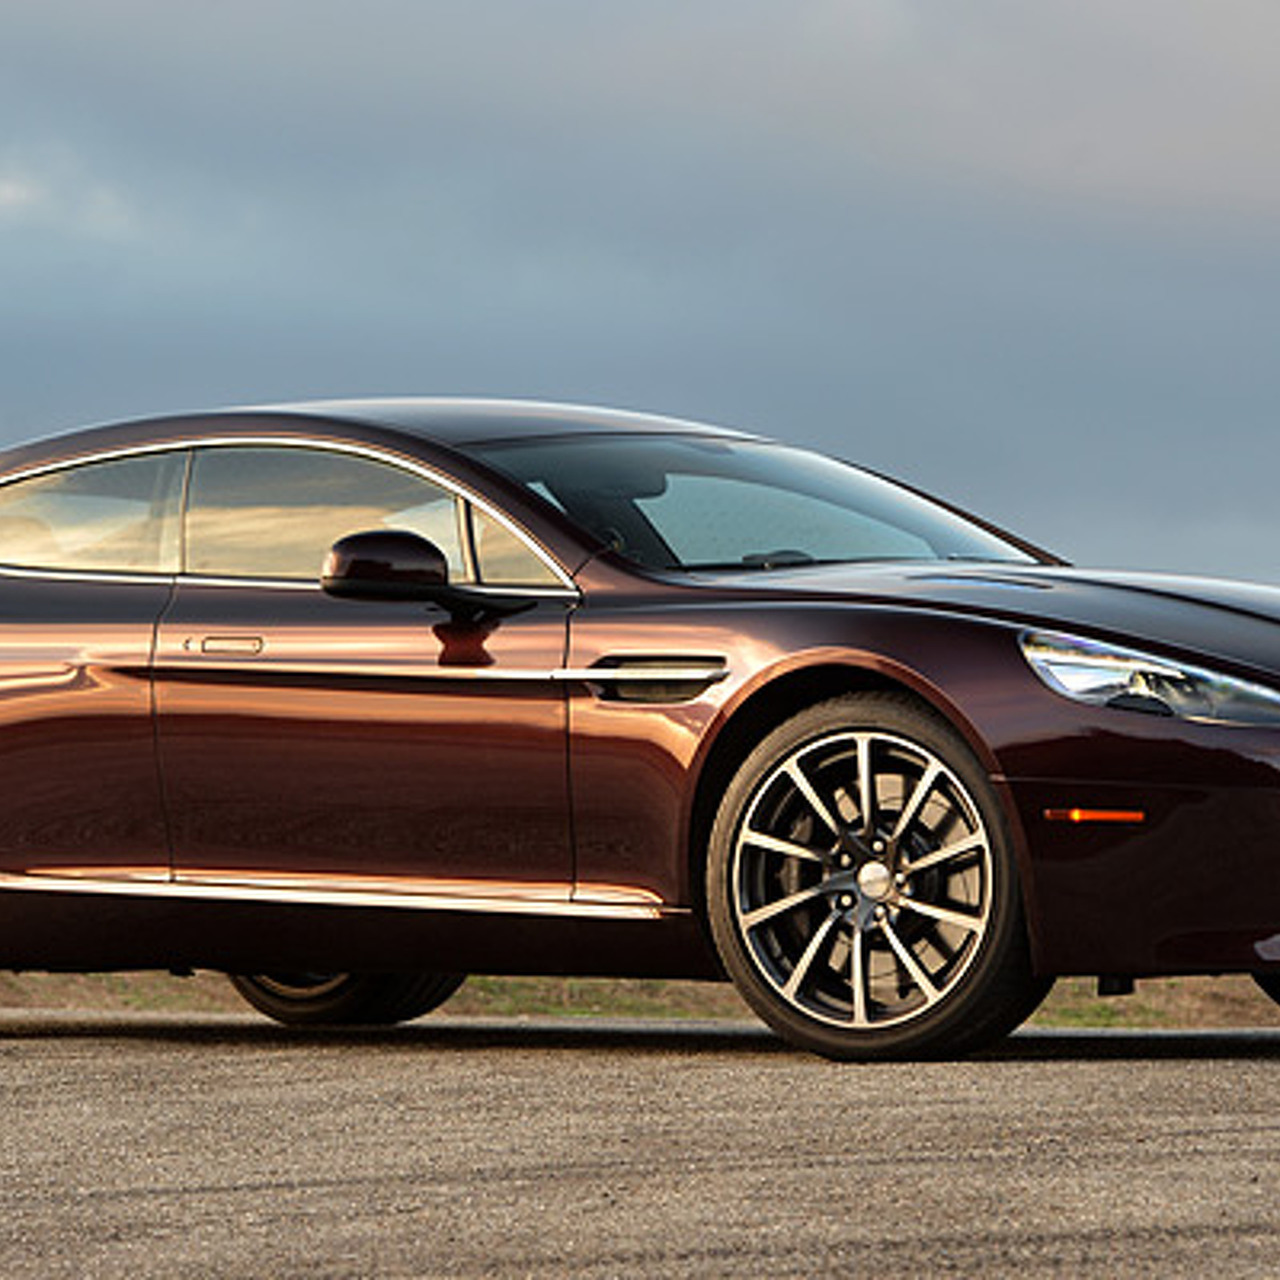 1,000-HP Electric Aston Martin Rapide Will Arrive in 2017